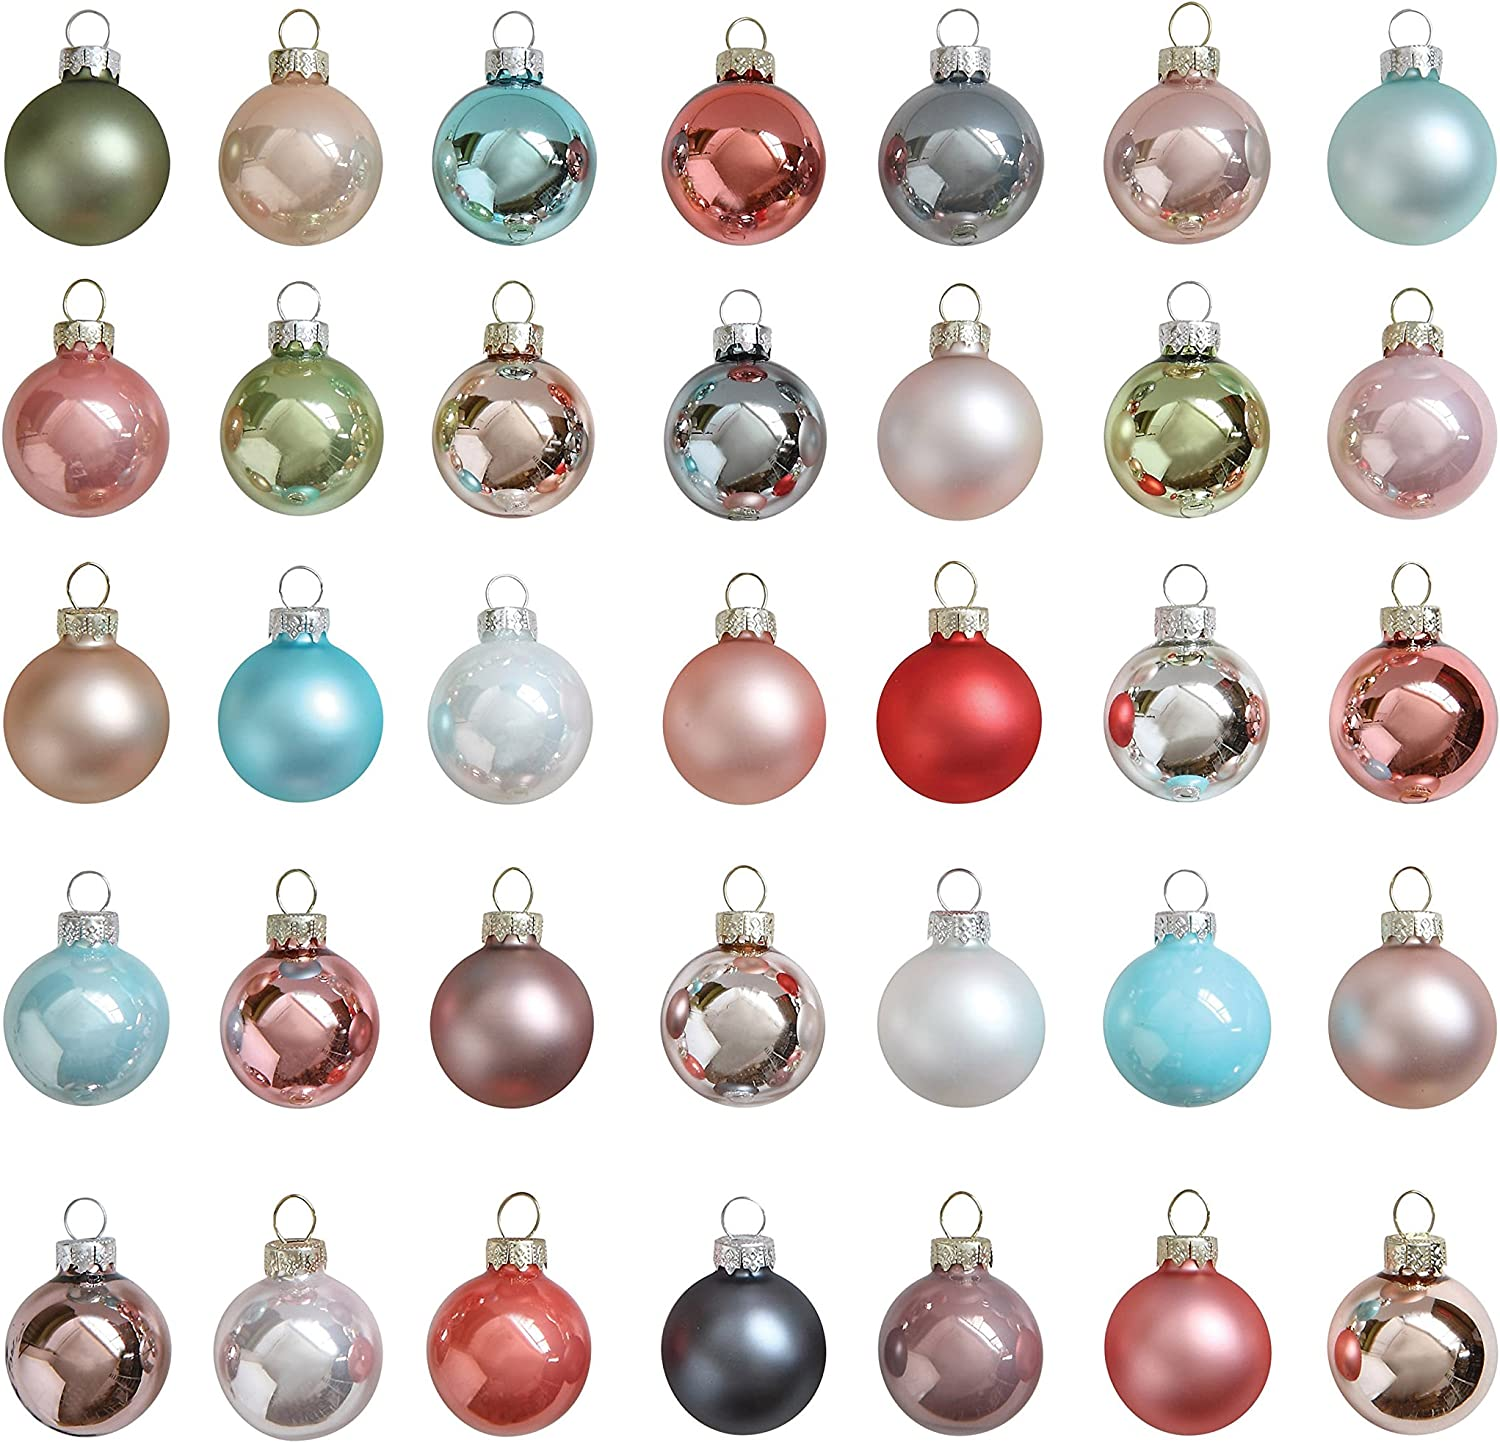 Creative Co Op XM20 Set of 20 Pastel Multicolor Round Glass Ornaments